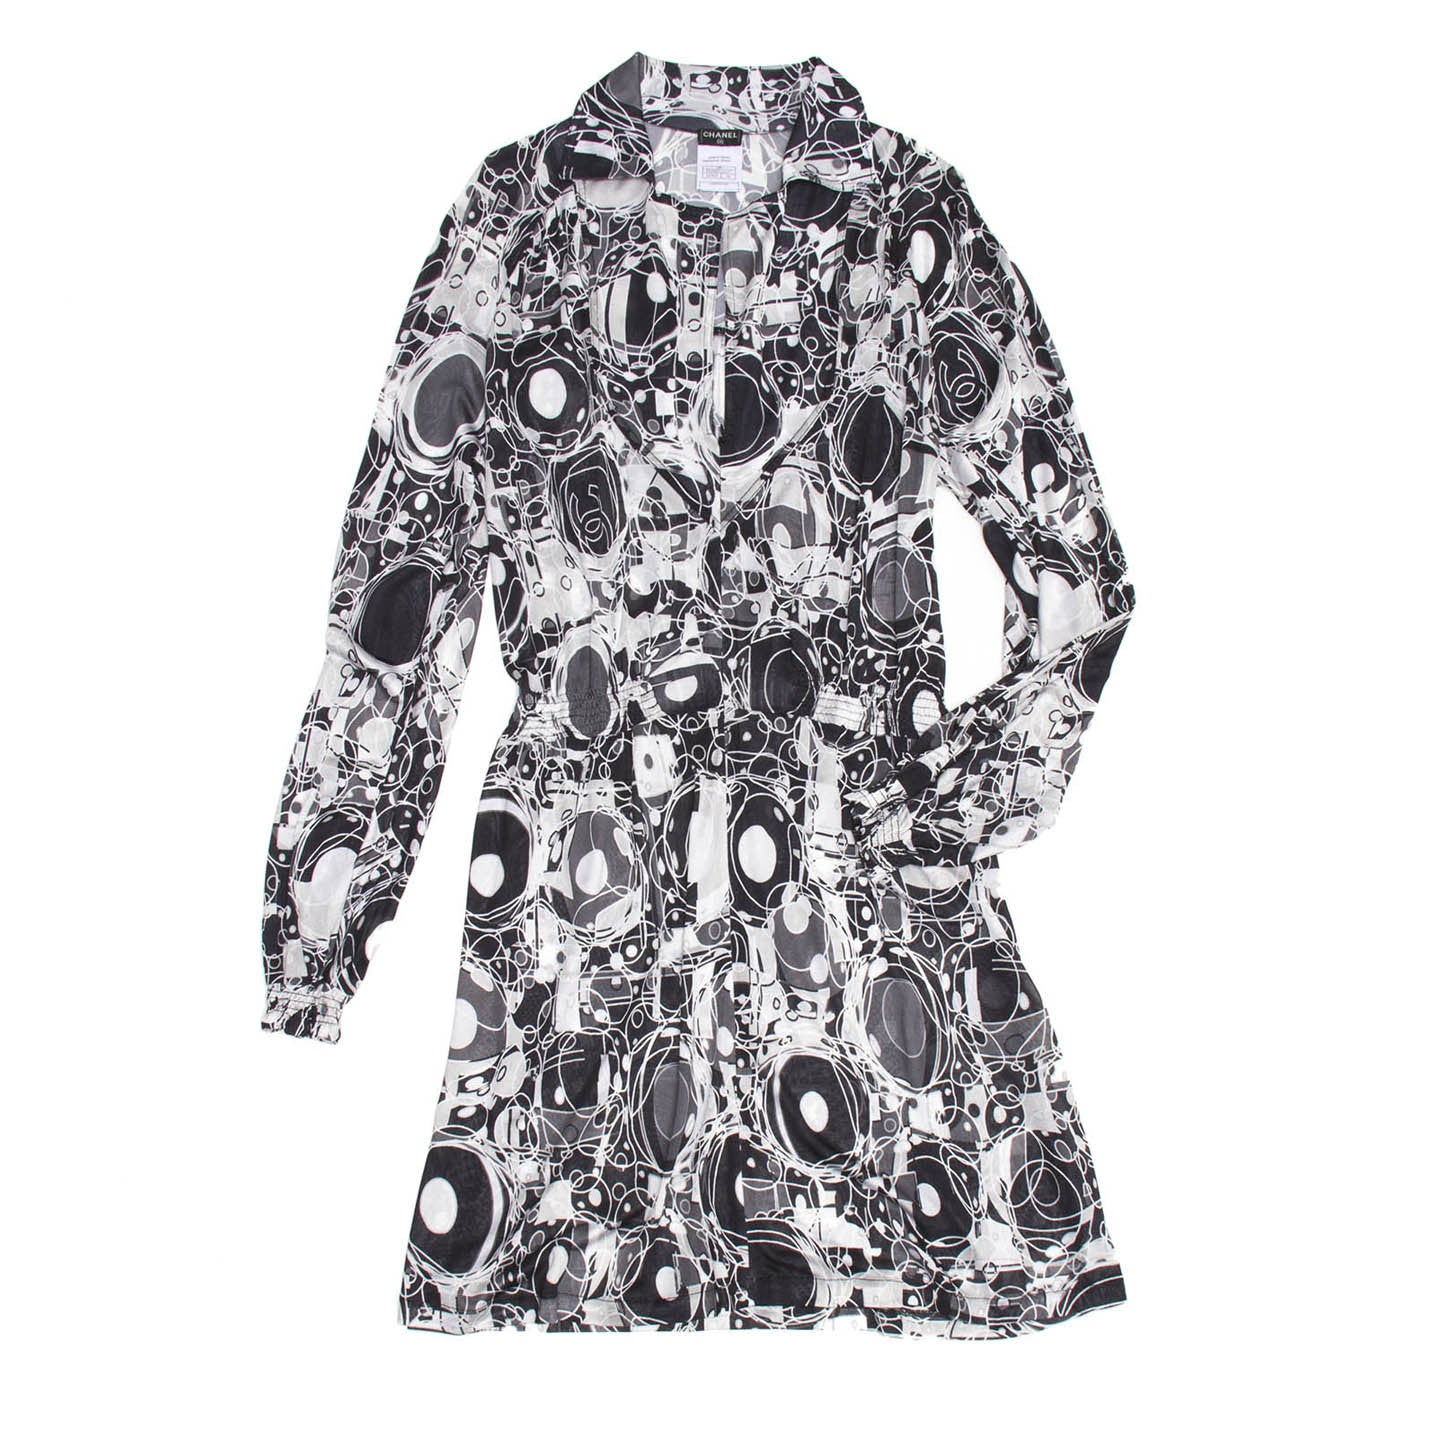 Find an authentic preowned Chanel Black & White Printed Dress, size 42 (French) at BunnyJack, where a portion of every sale goes to charity.